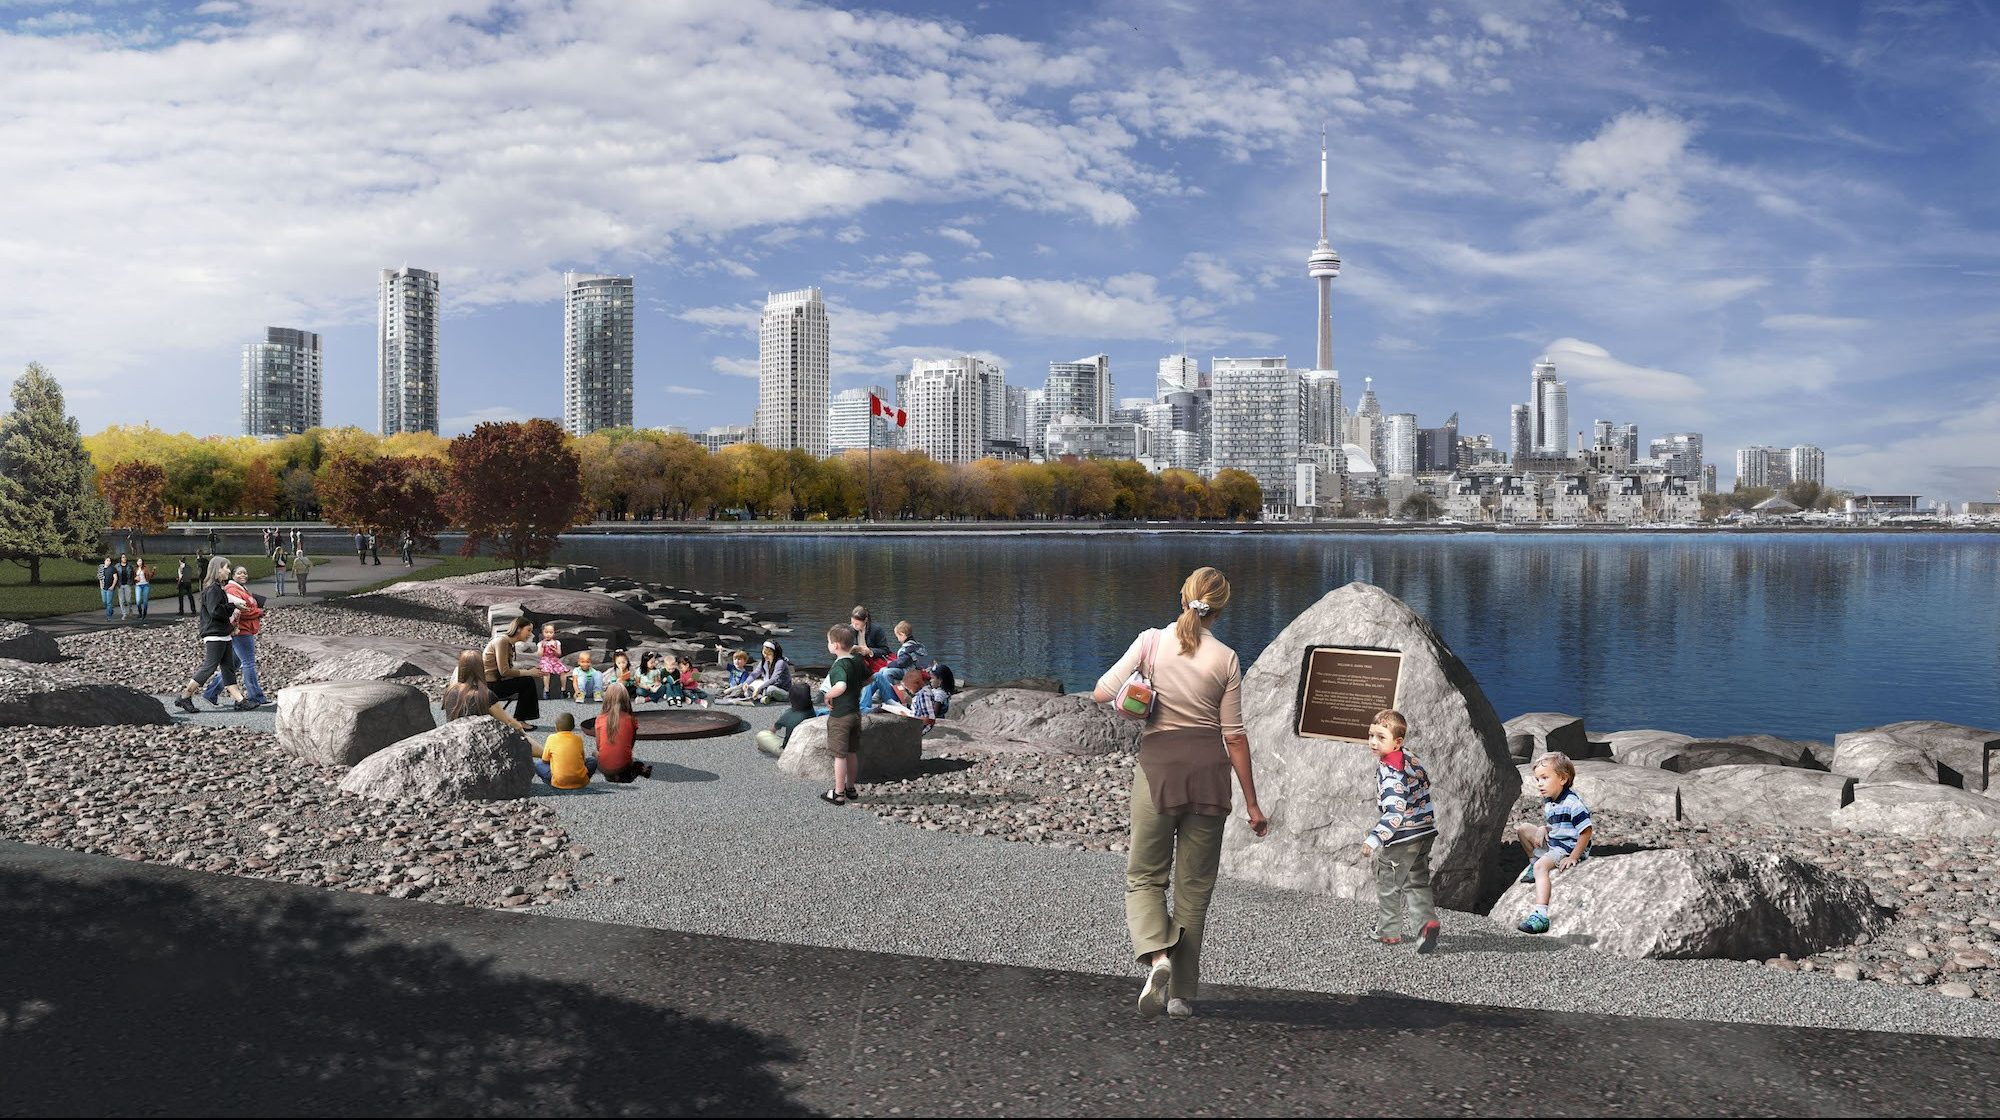 Ontario Place is getting turned into an amazing new urban park (IMAGES)